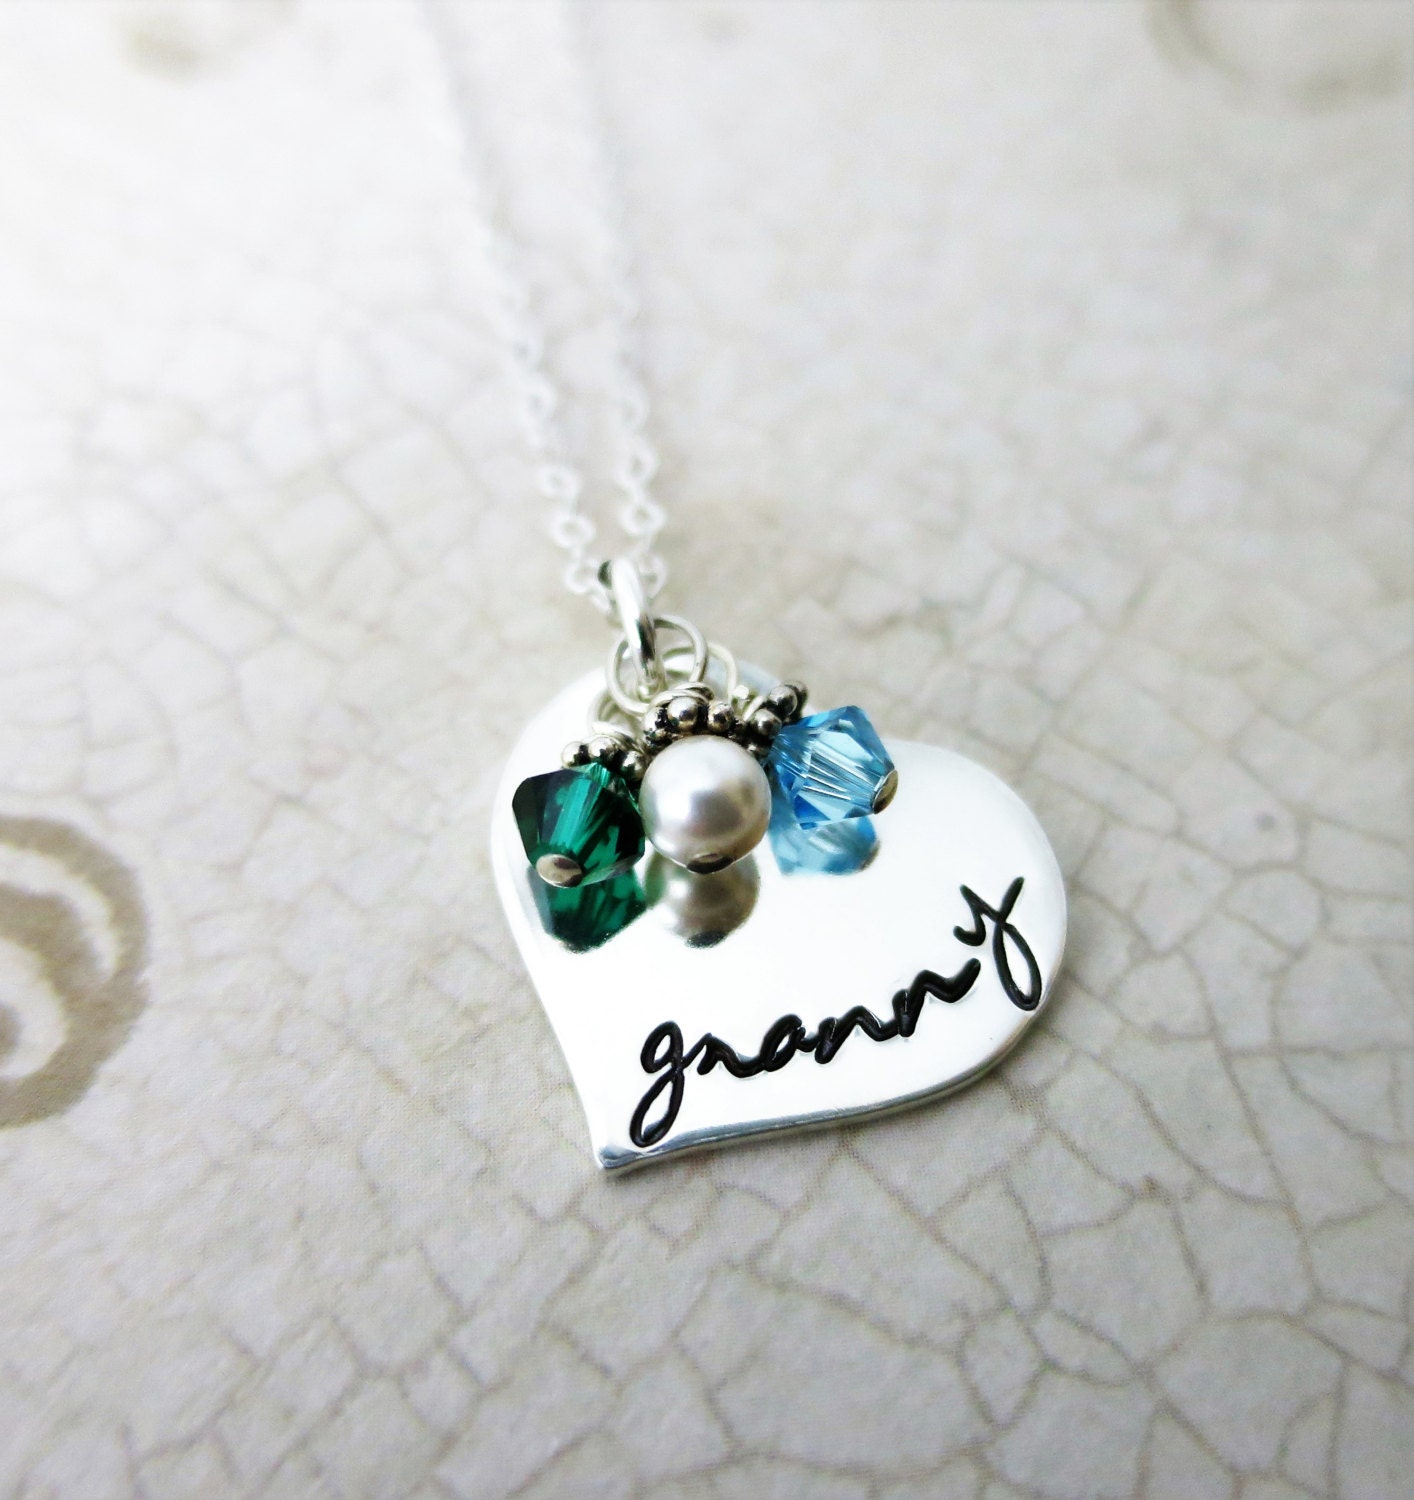 birthstone mom grandkid pin necklace handstamped bracelet nana jewelry charm gift personalized grandma grandchild